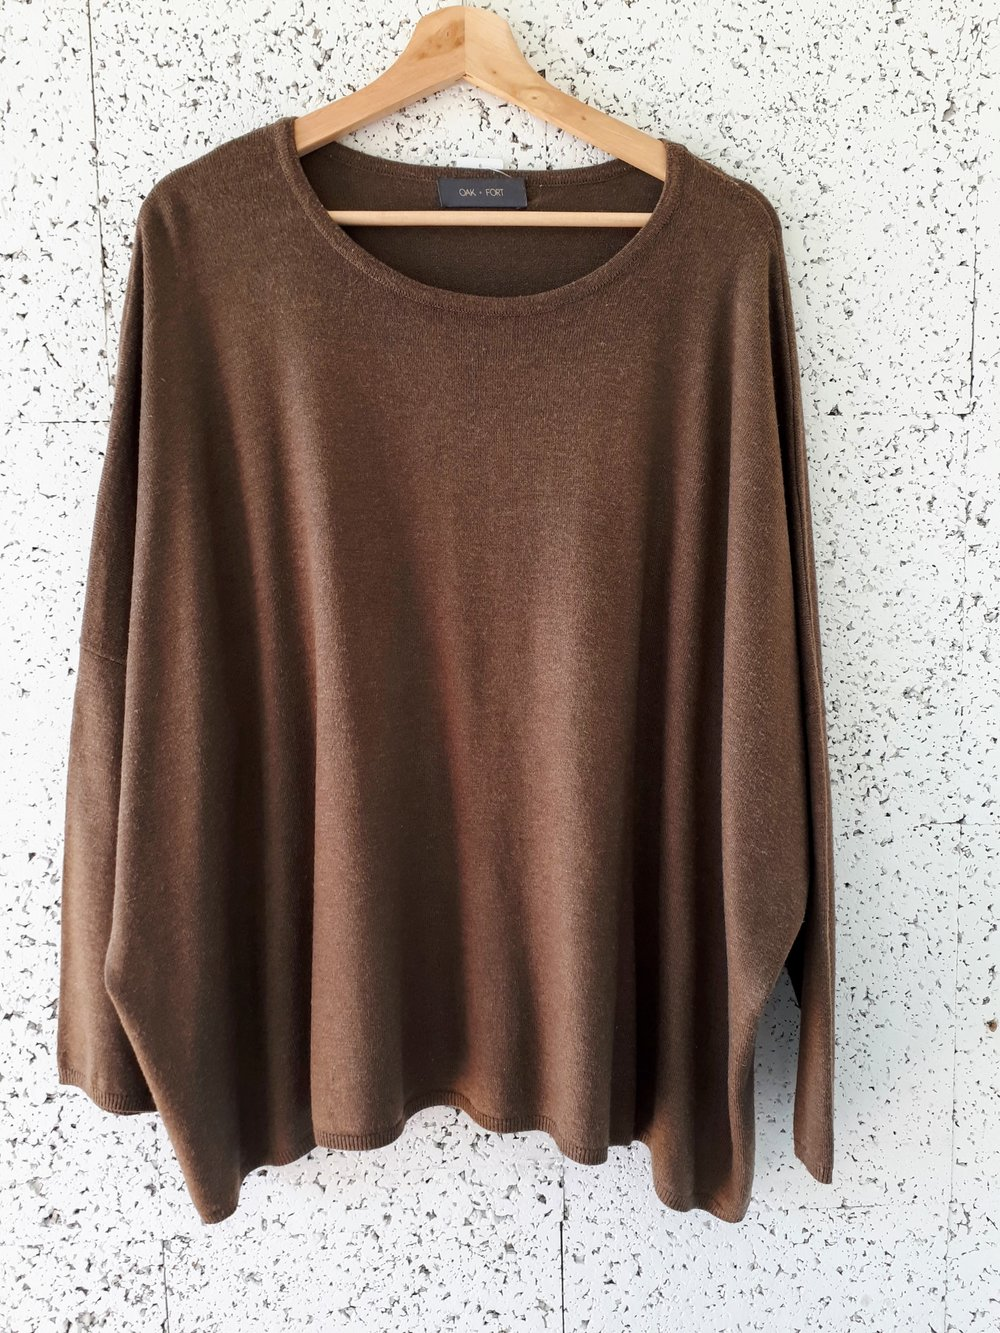 Oak+Fort top; Size L, $42